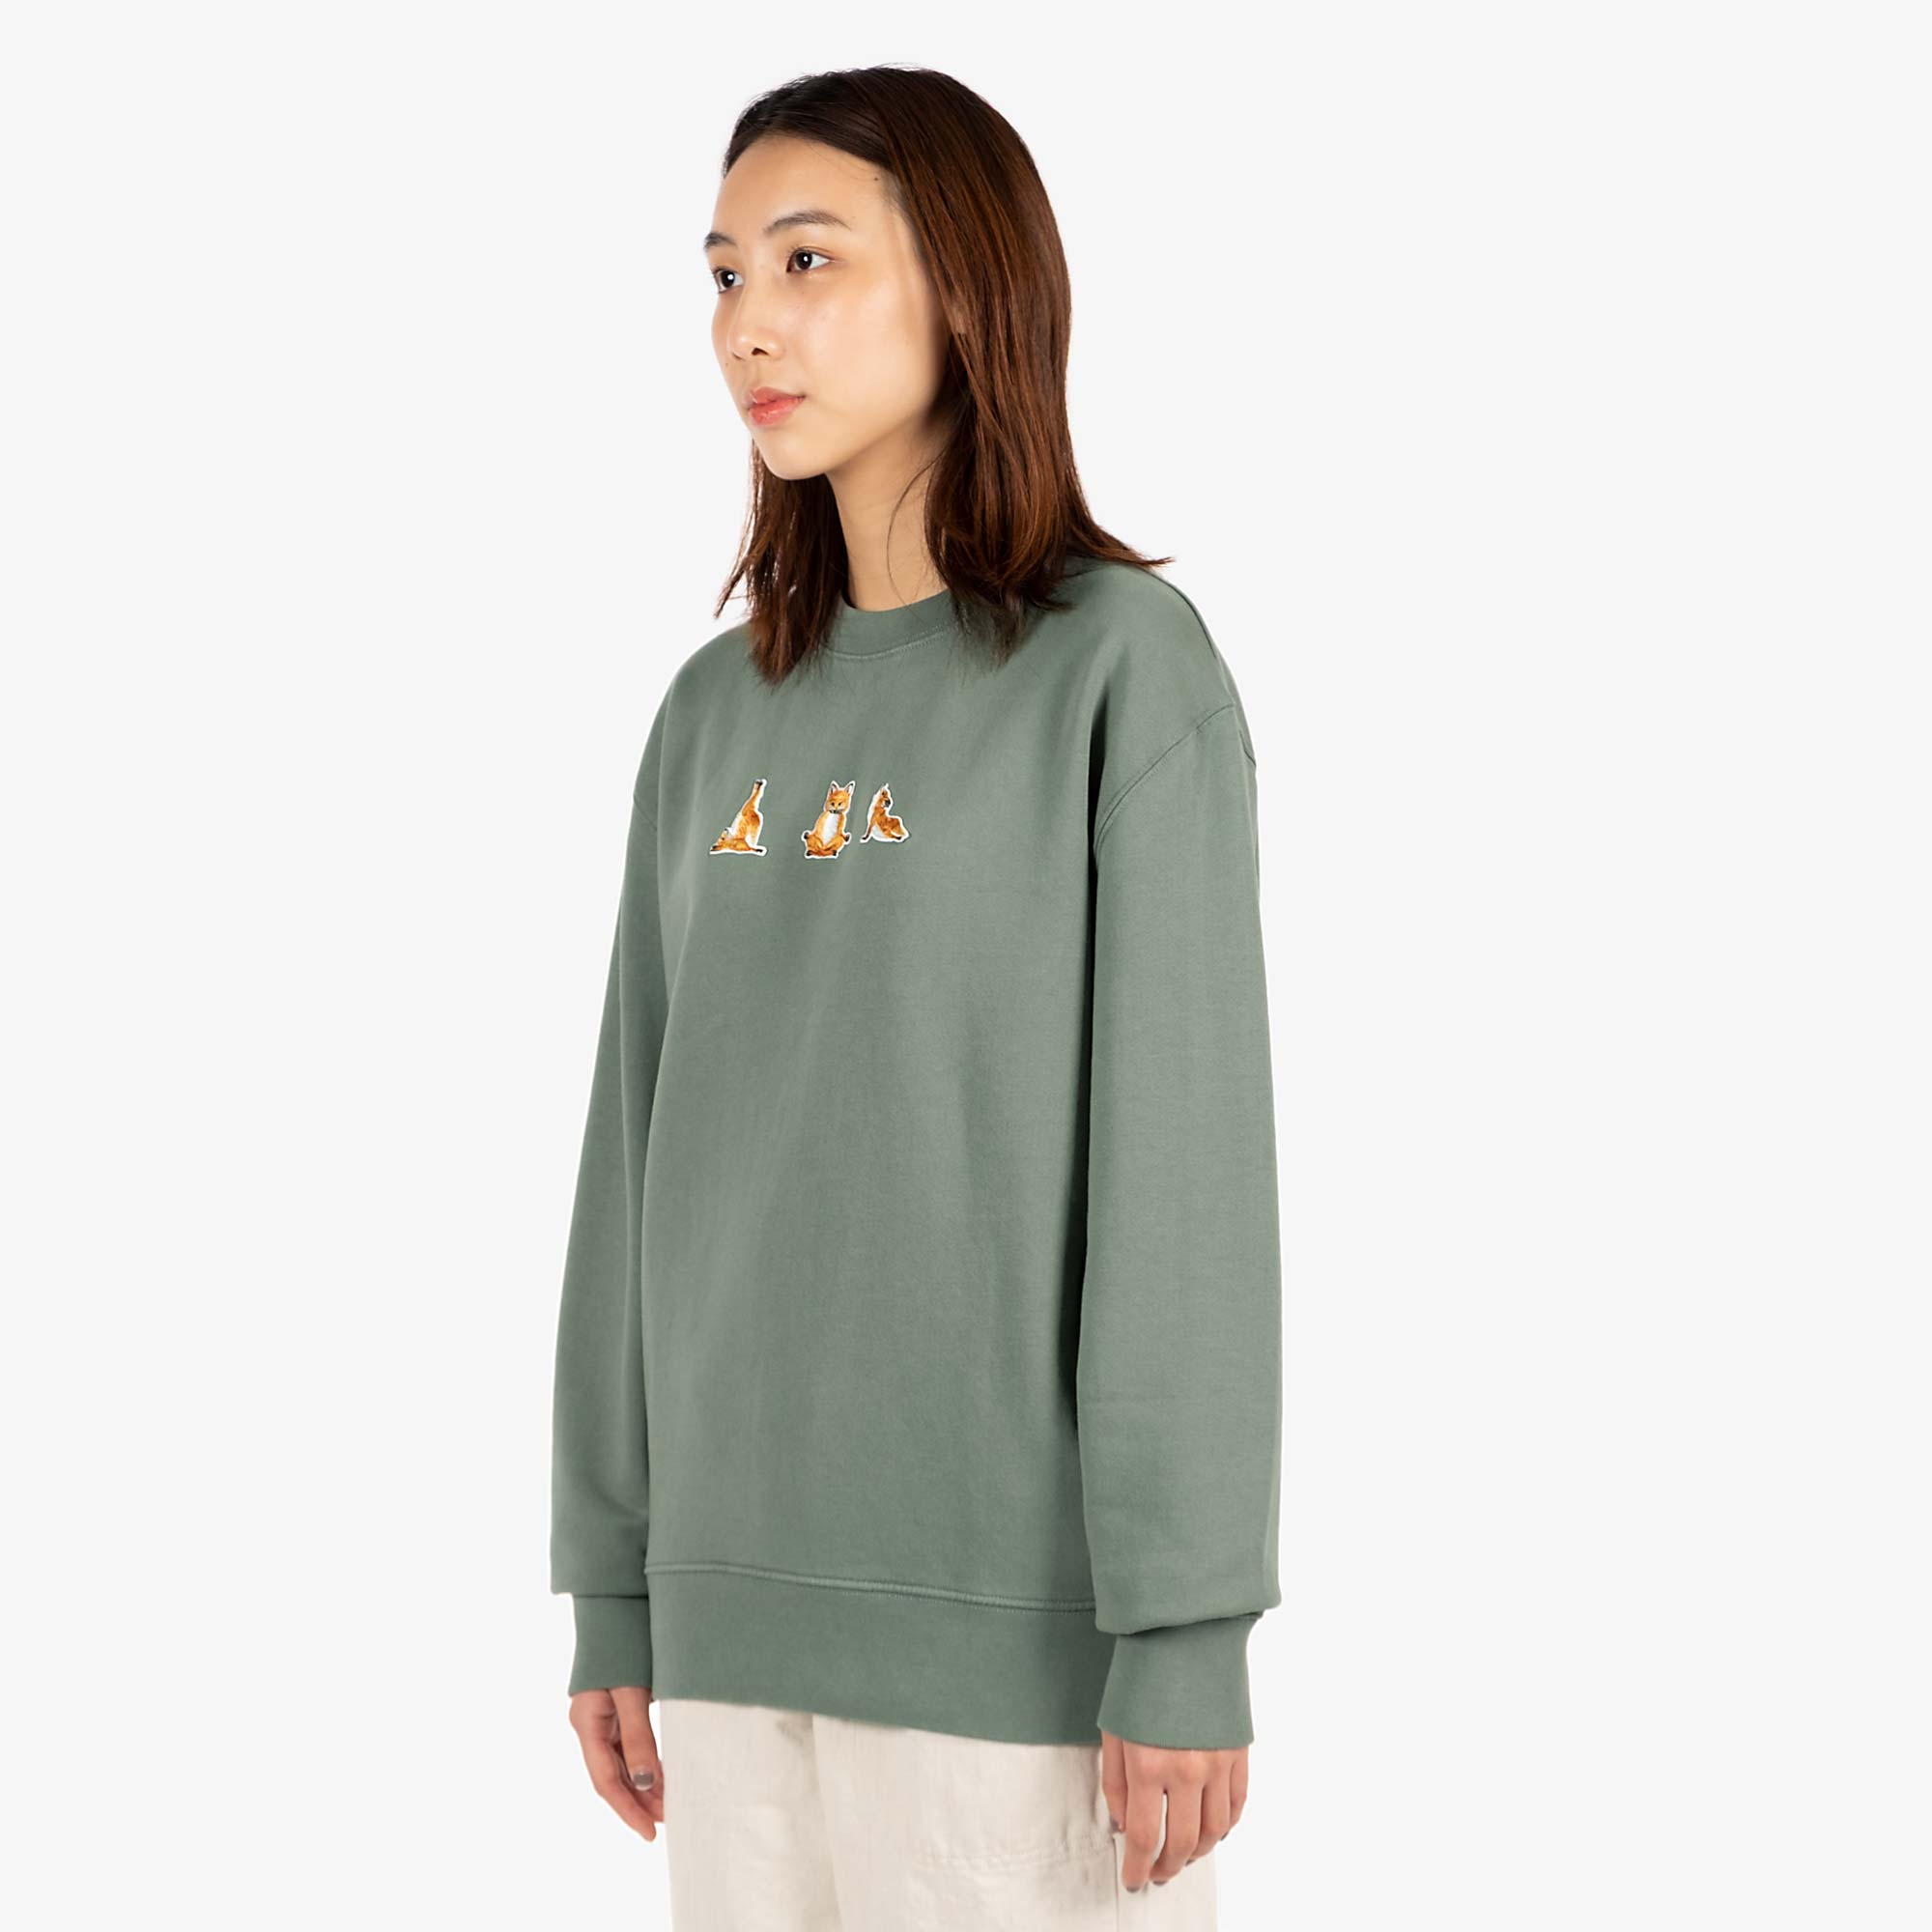 Maison Kitsune Womens Yoga Fox Patches Sweat - Blue / Green 4